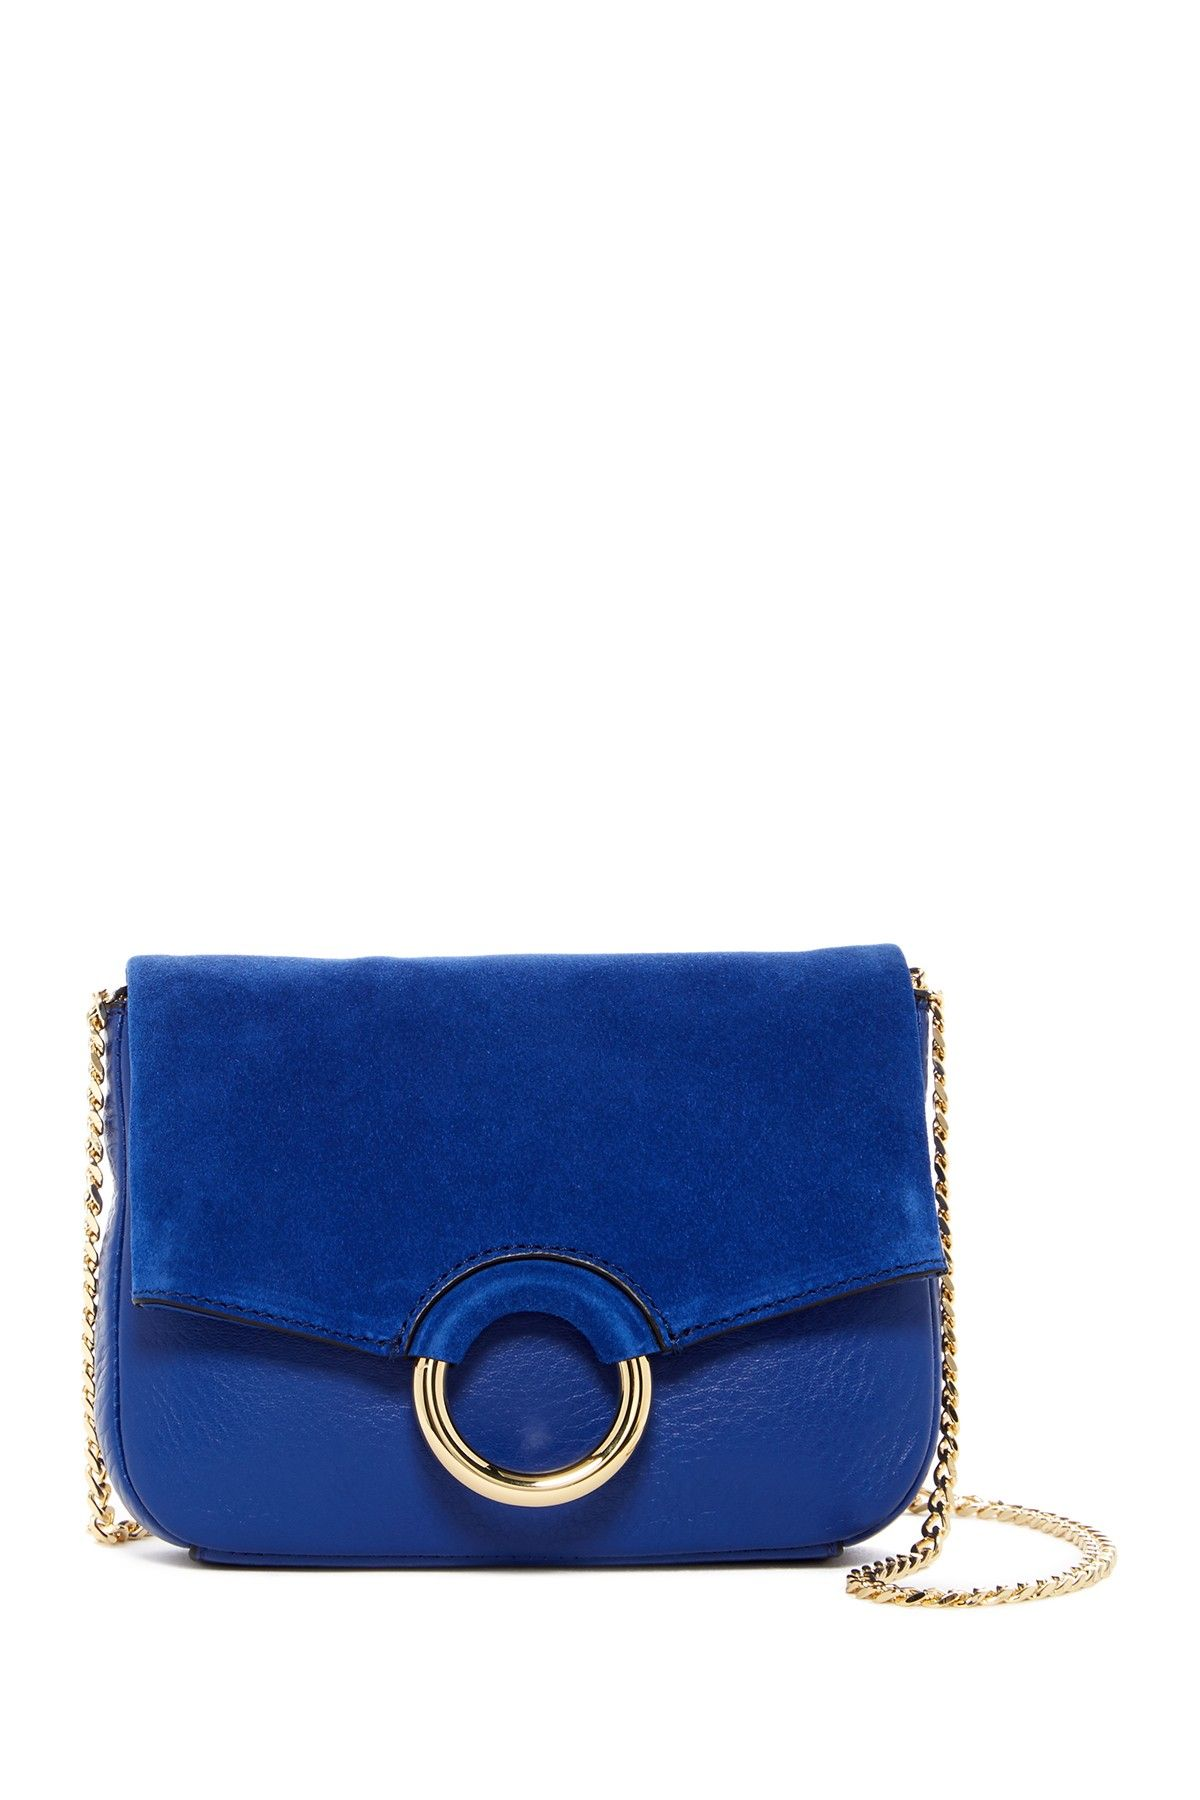 196a67ed504 Adina Leather Crossbody Bag by Vince Camuto on  nordstrom rack